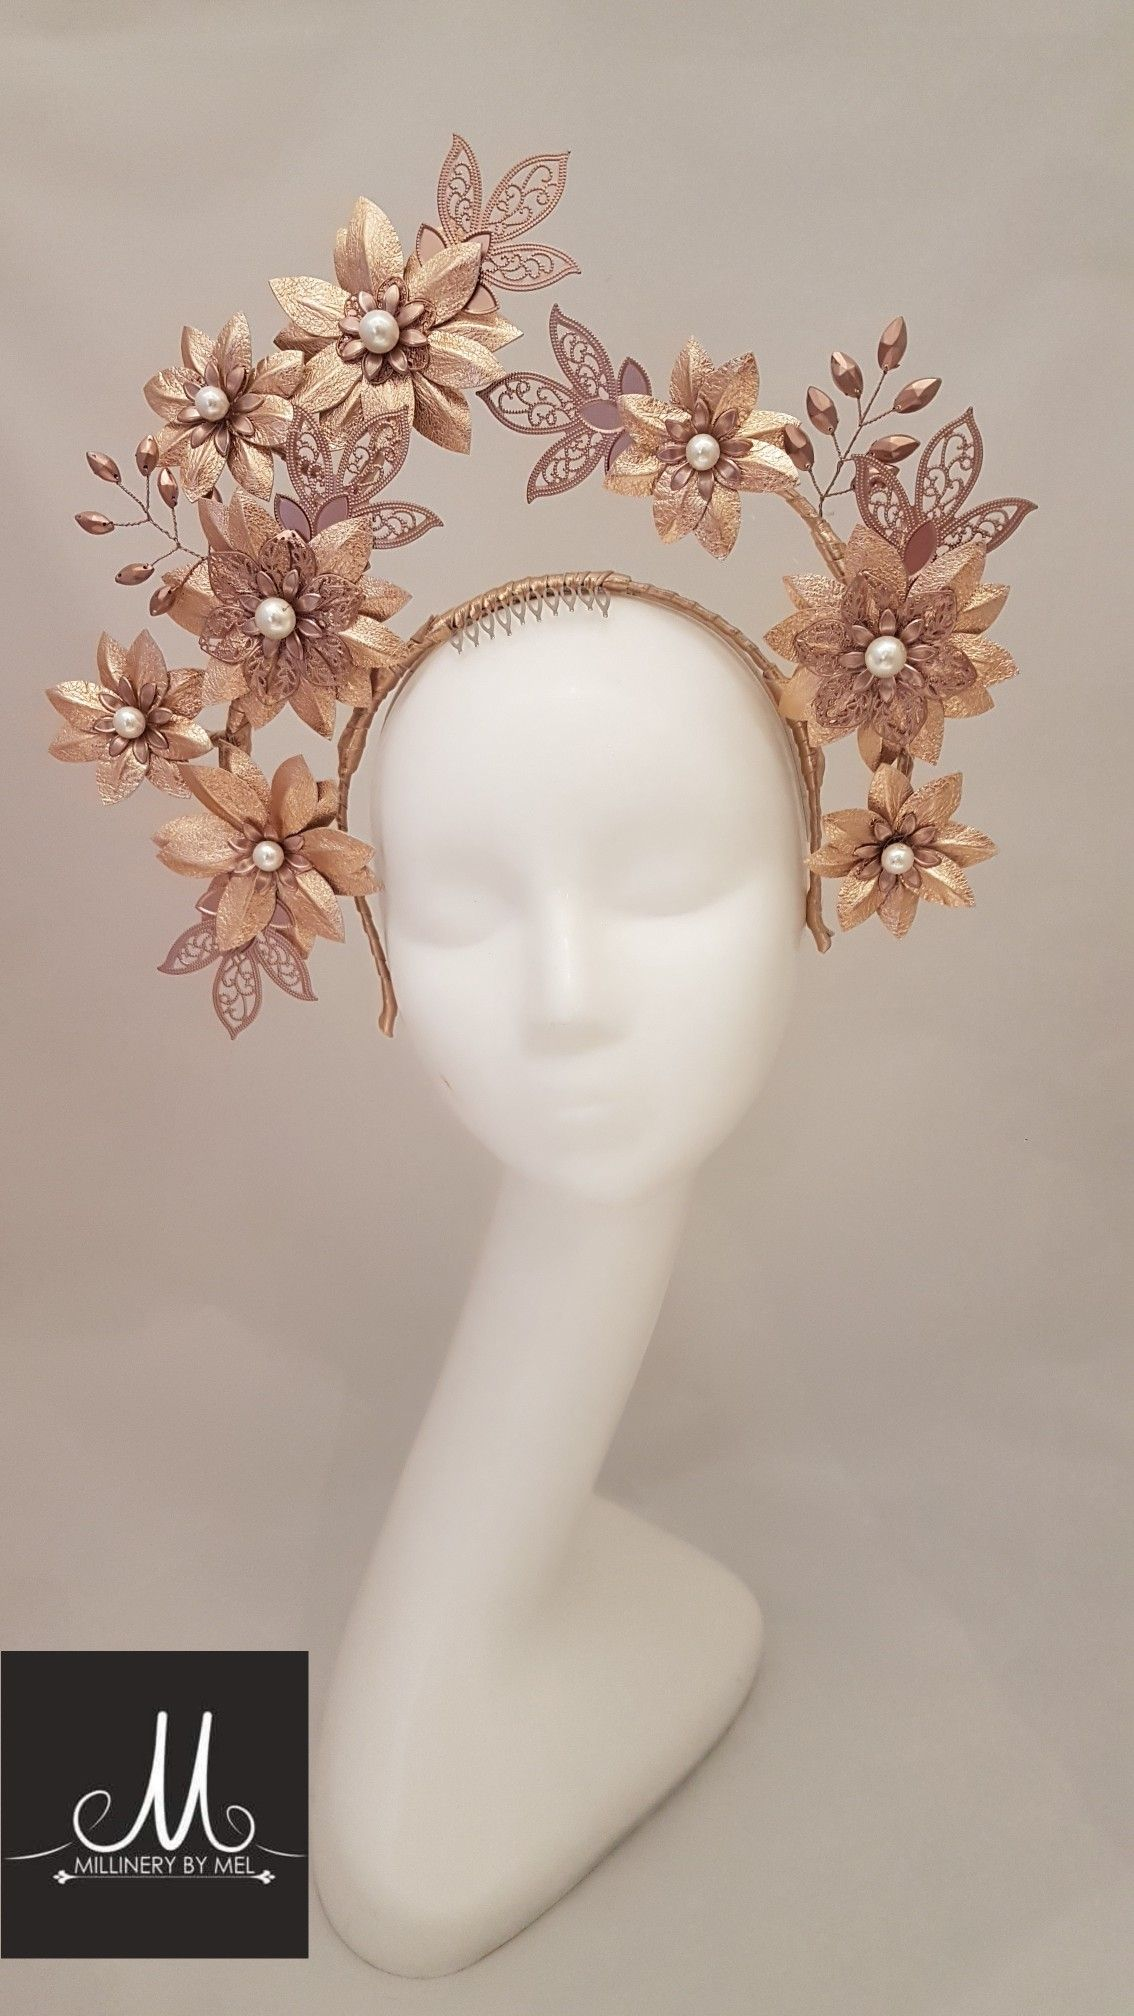 Millinery By Mel design Rose gold leather and embellished crown   millinerybymel 5dbeebd1a3c